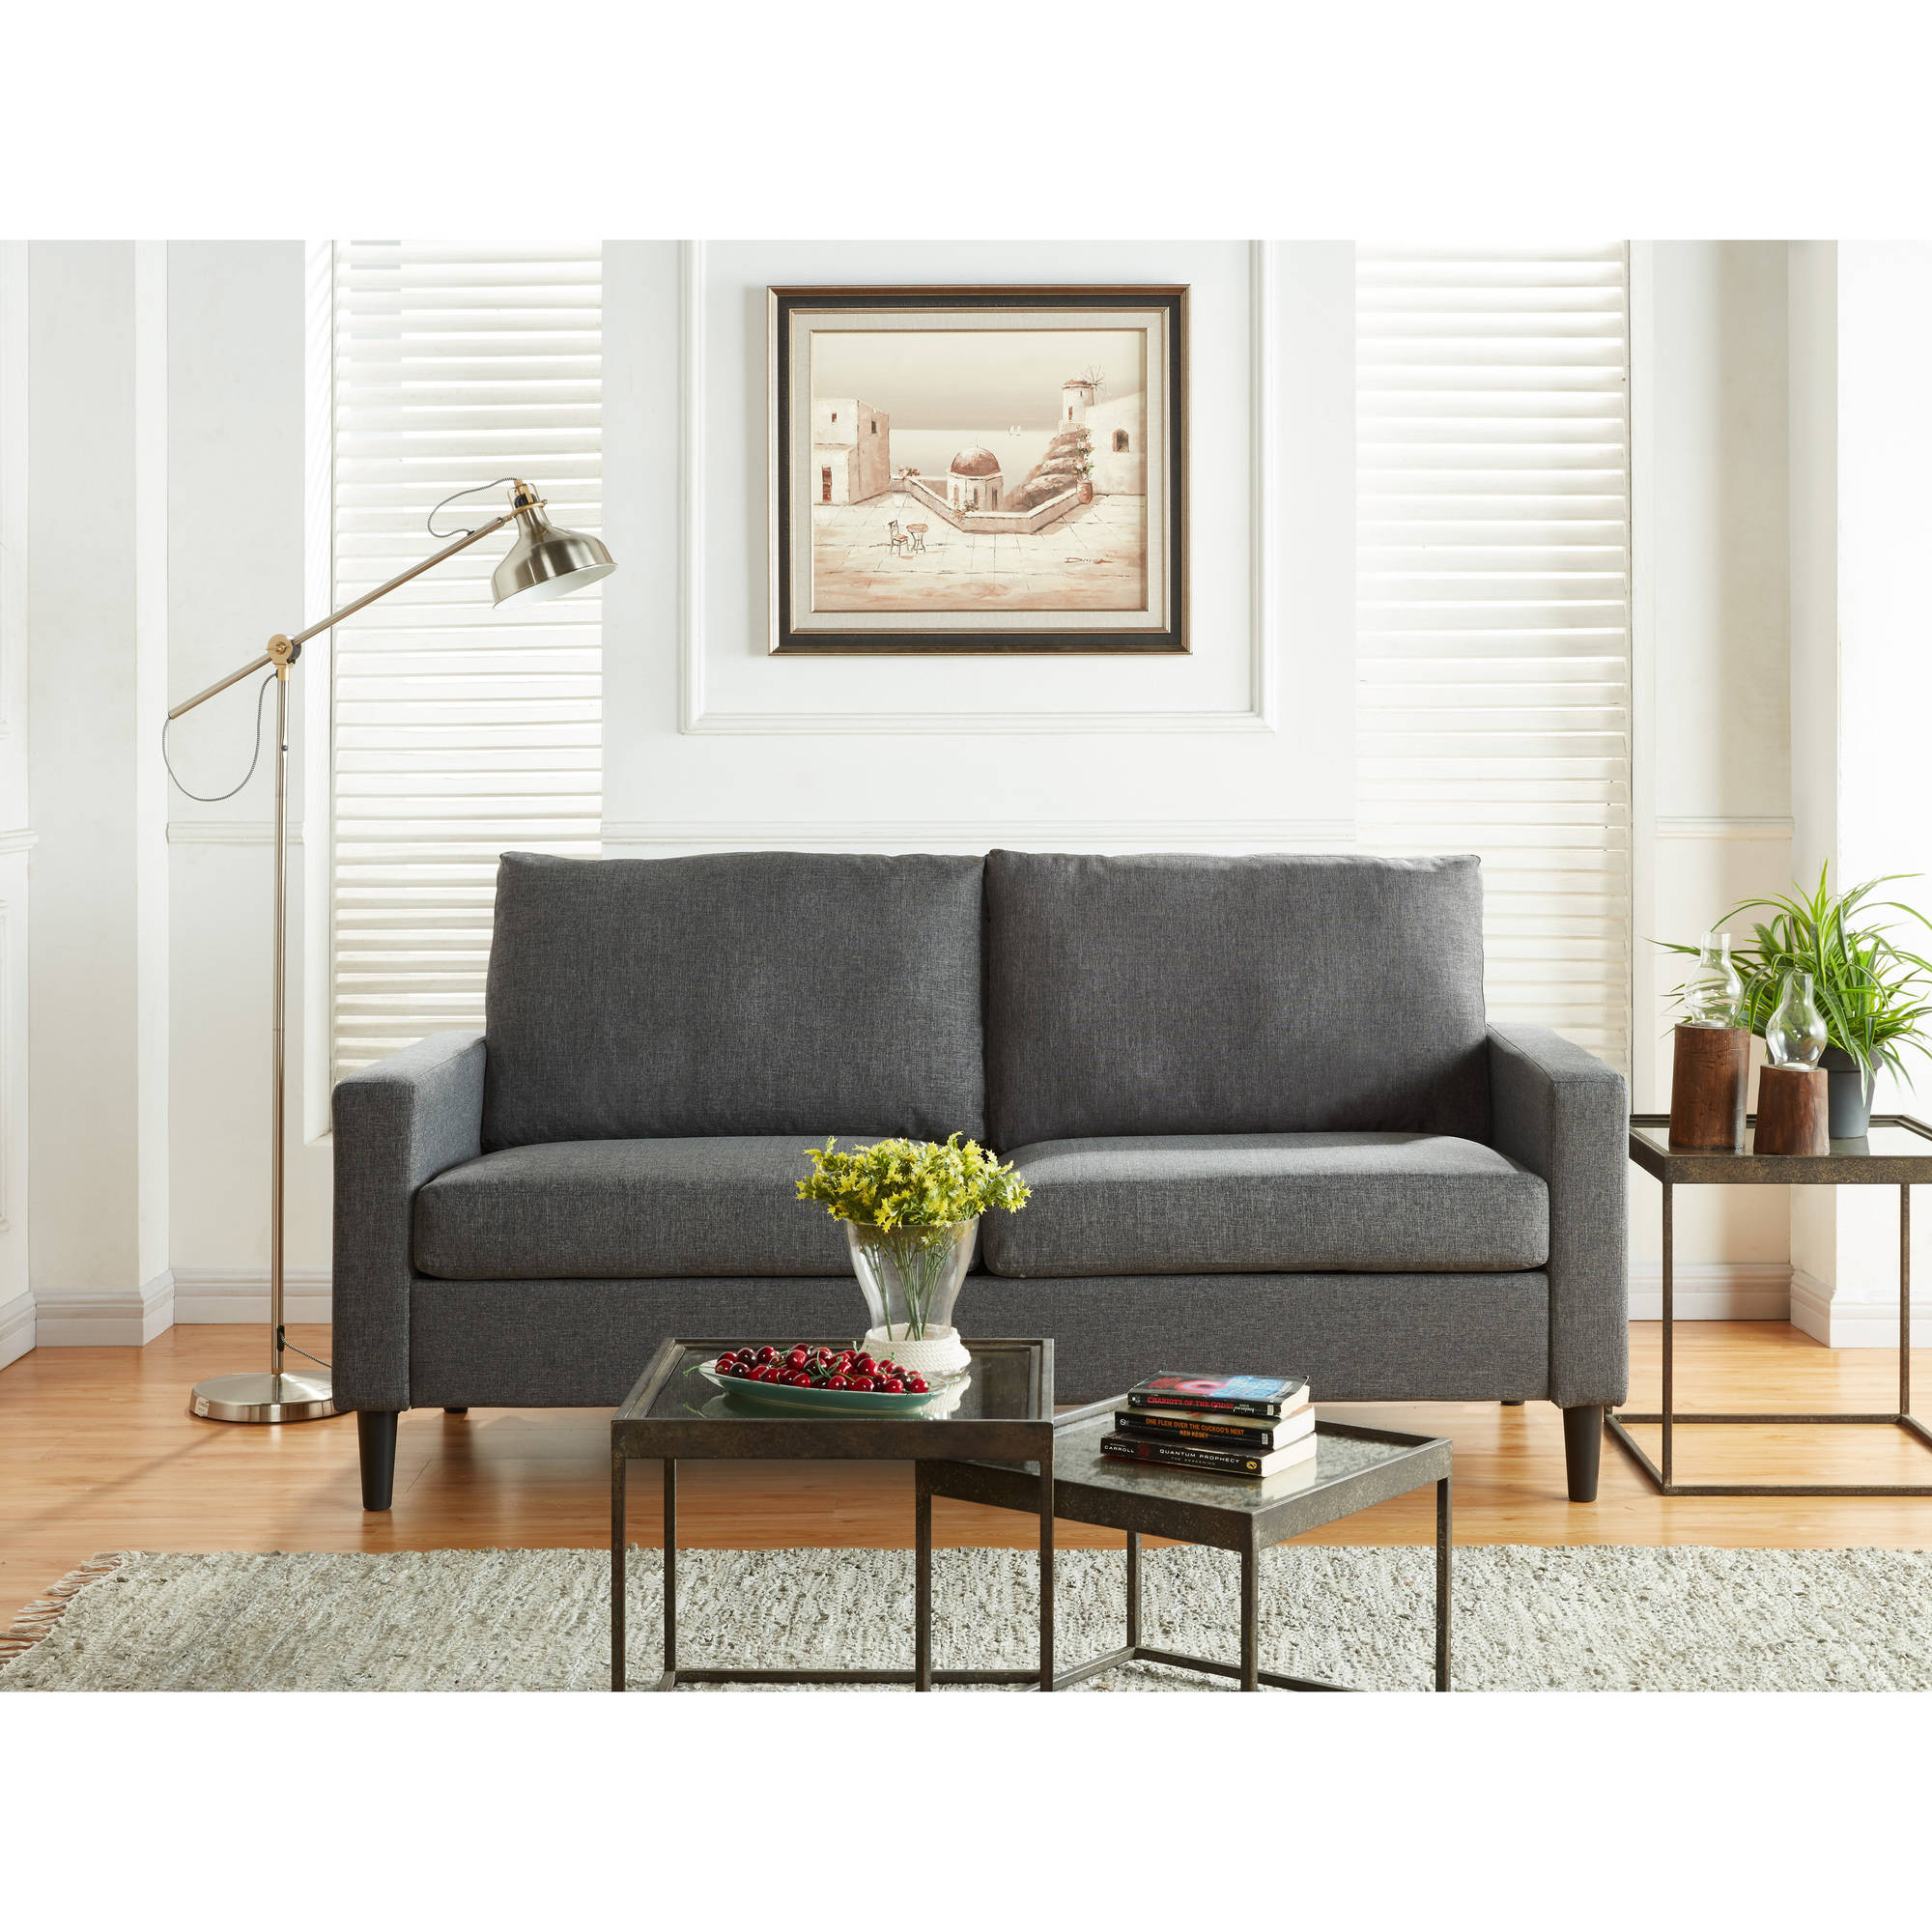 mainstays apartment sofa, multiple colors - walmart